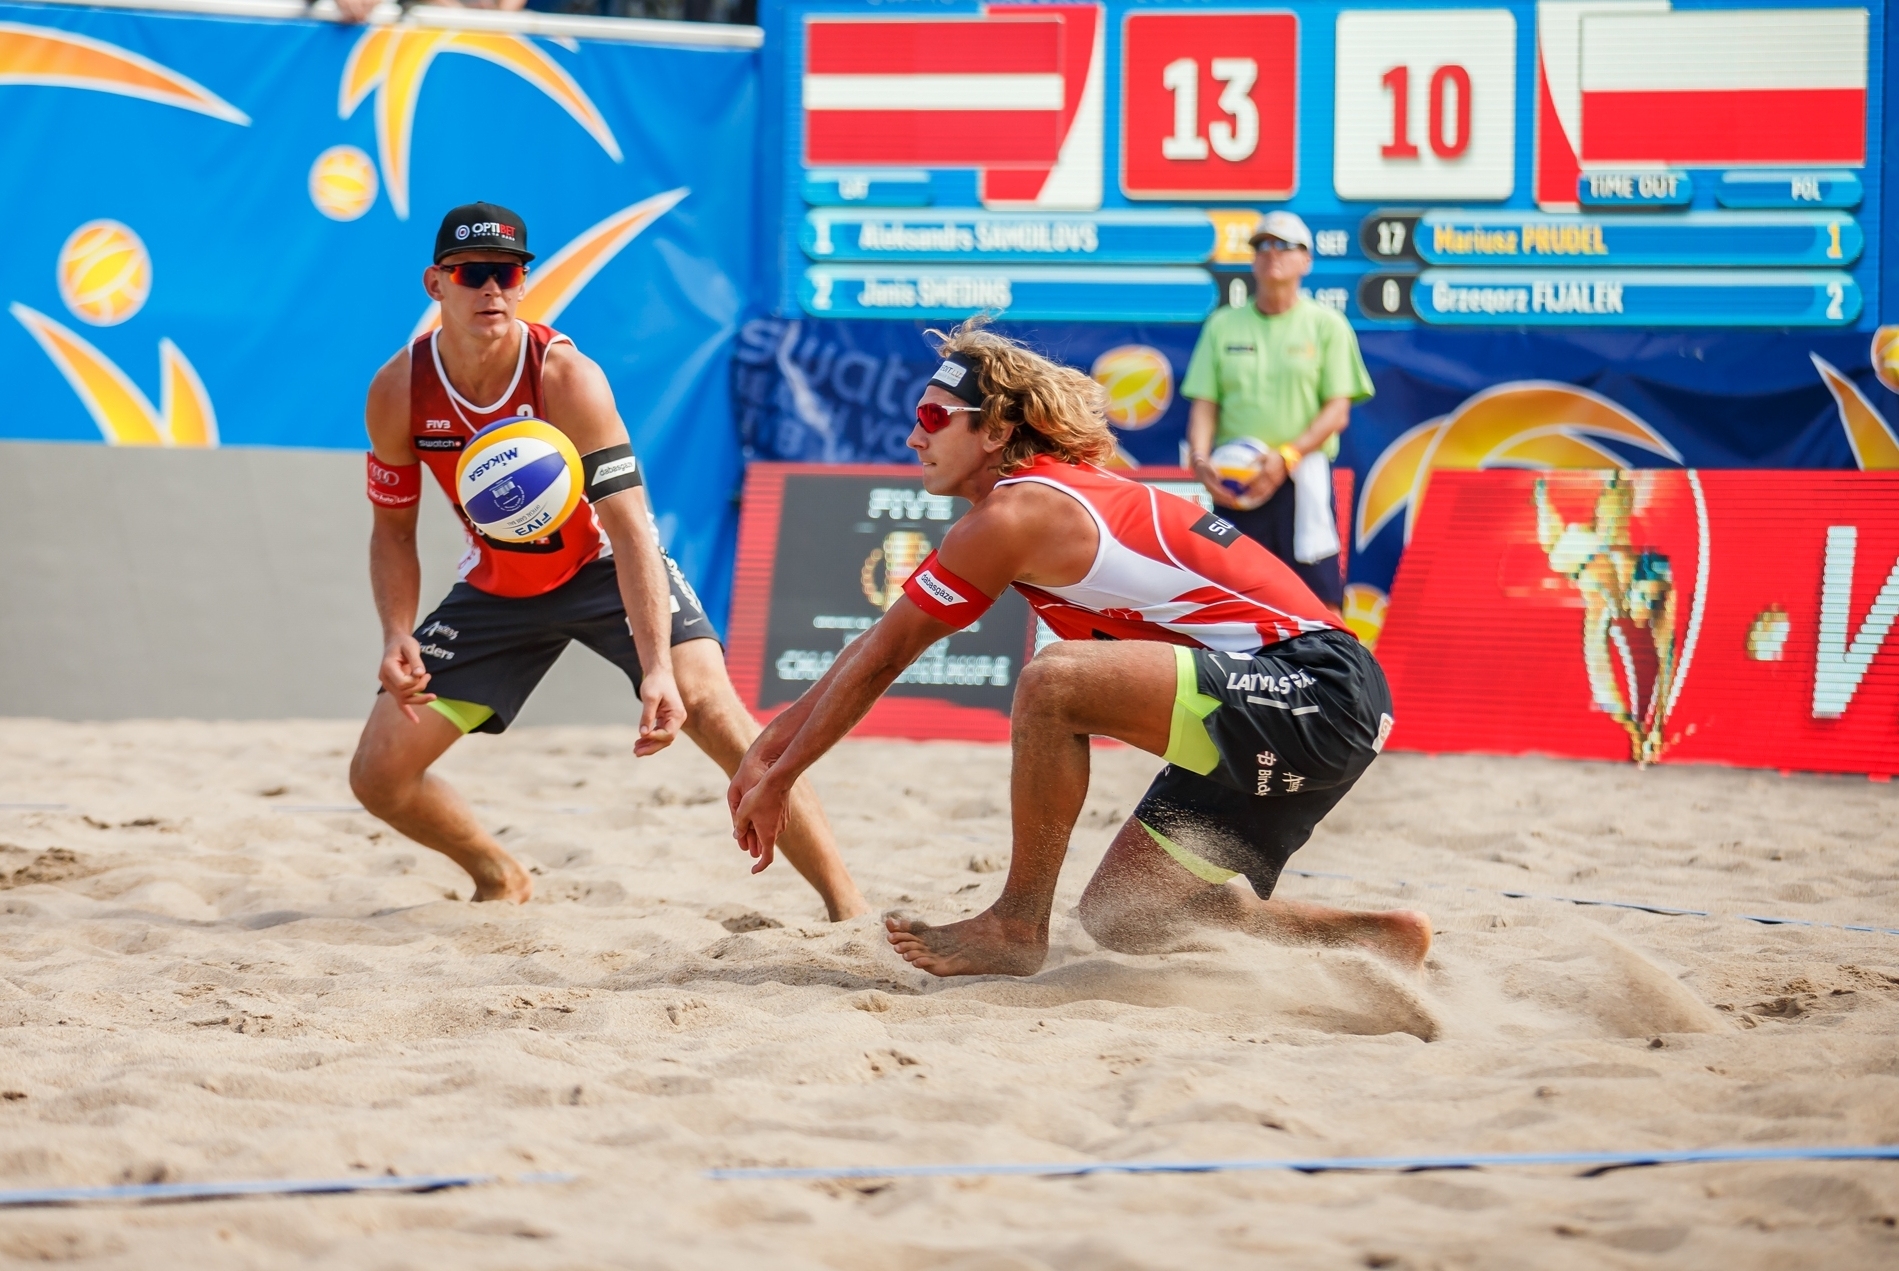 The Latvians triumphed in their first match at the #TorontoFinals. Photocredit: Martin Steinthaler.